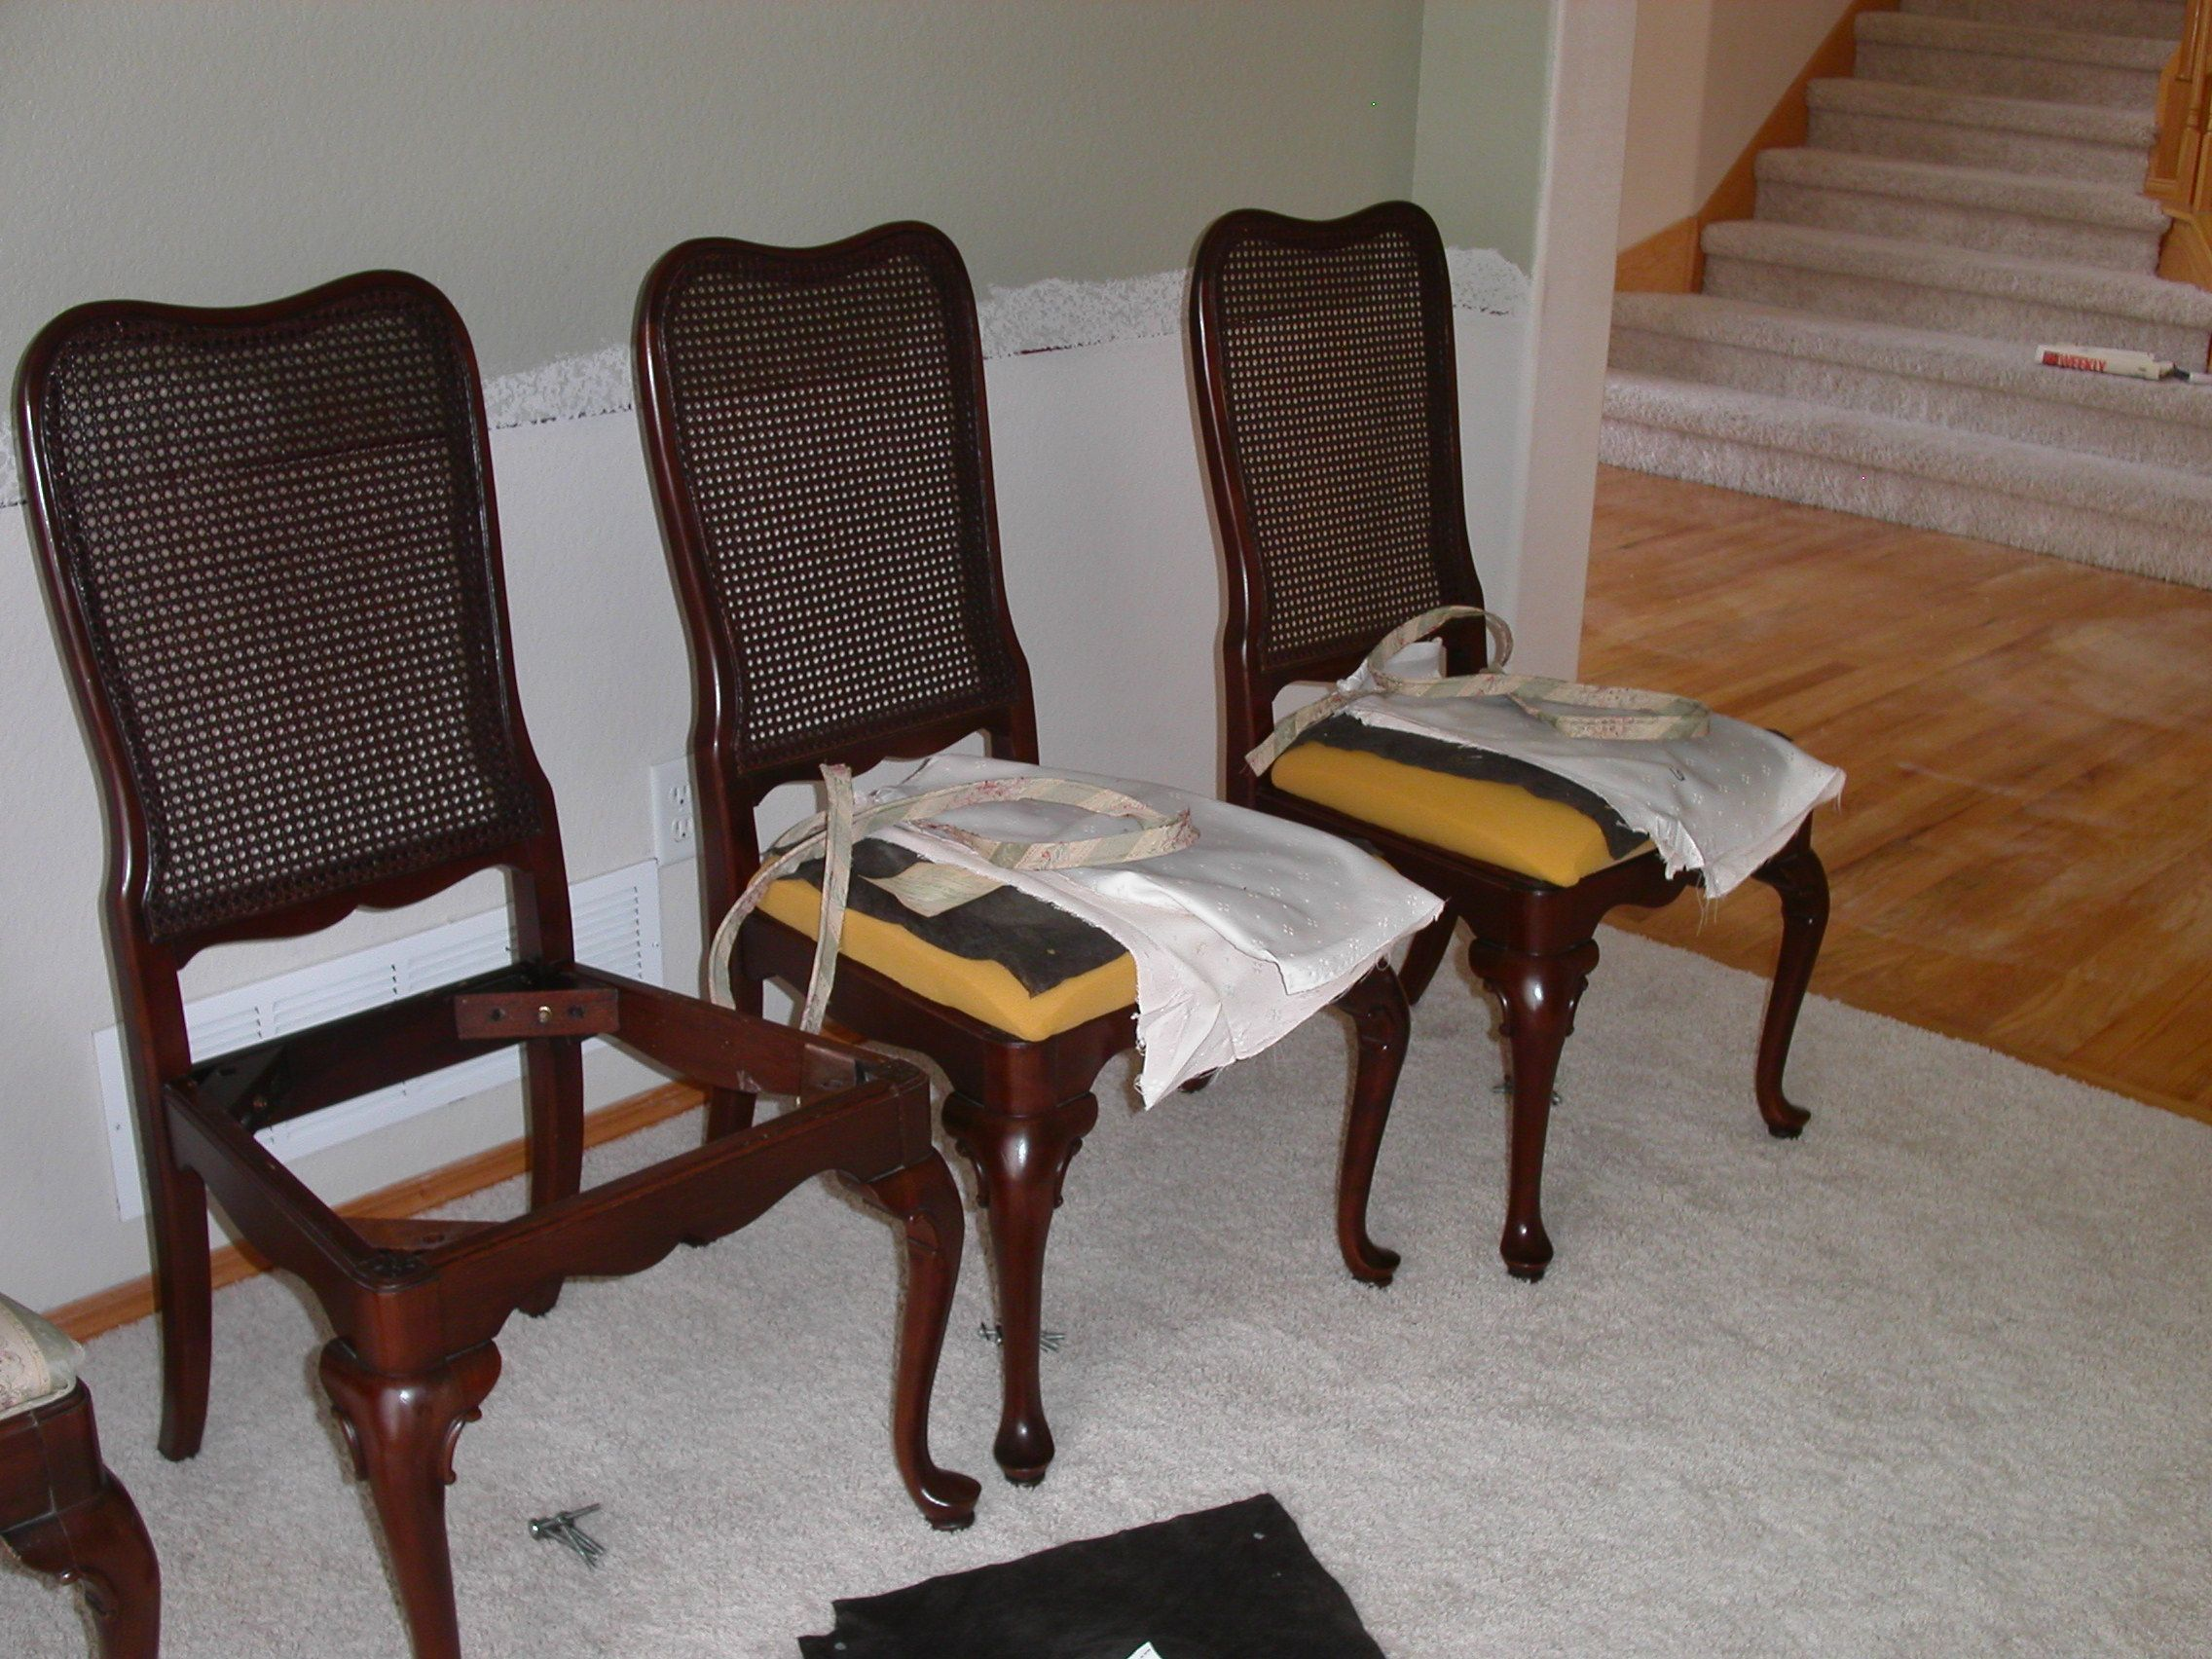 How To Reupholster A Dining Room Chair Prepossessing Decor Reupholster Dining Room Chair How To Recover A Dining Room Decorating Design